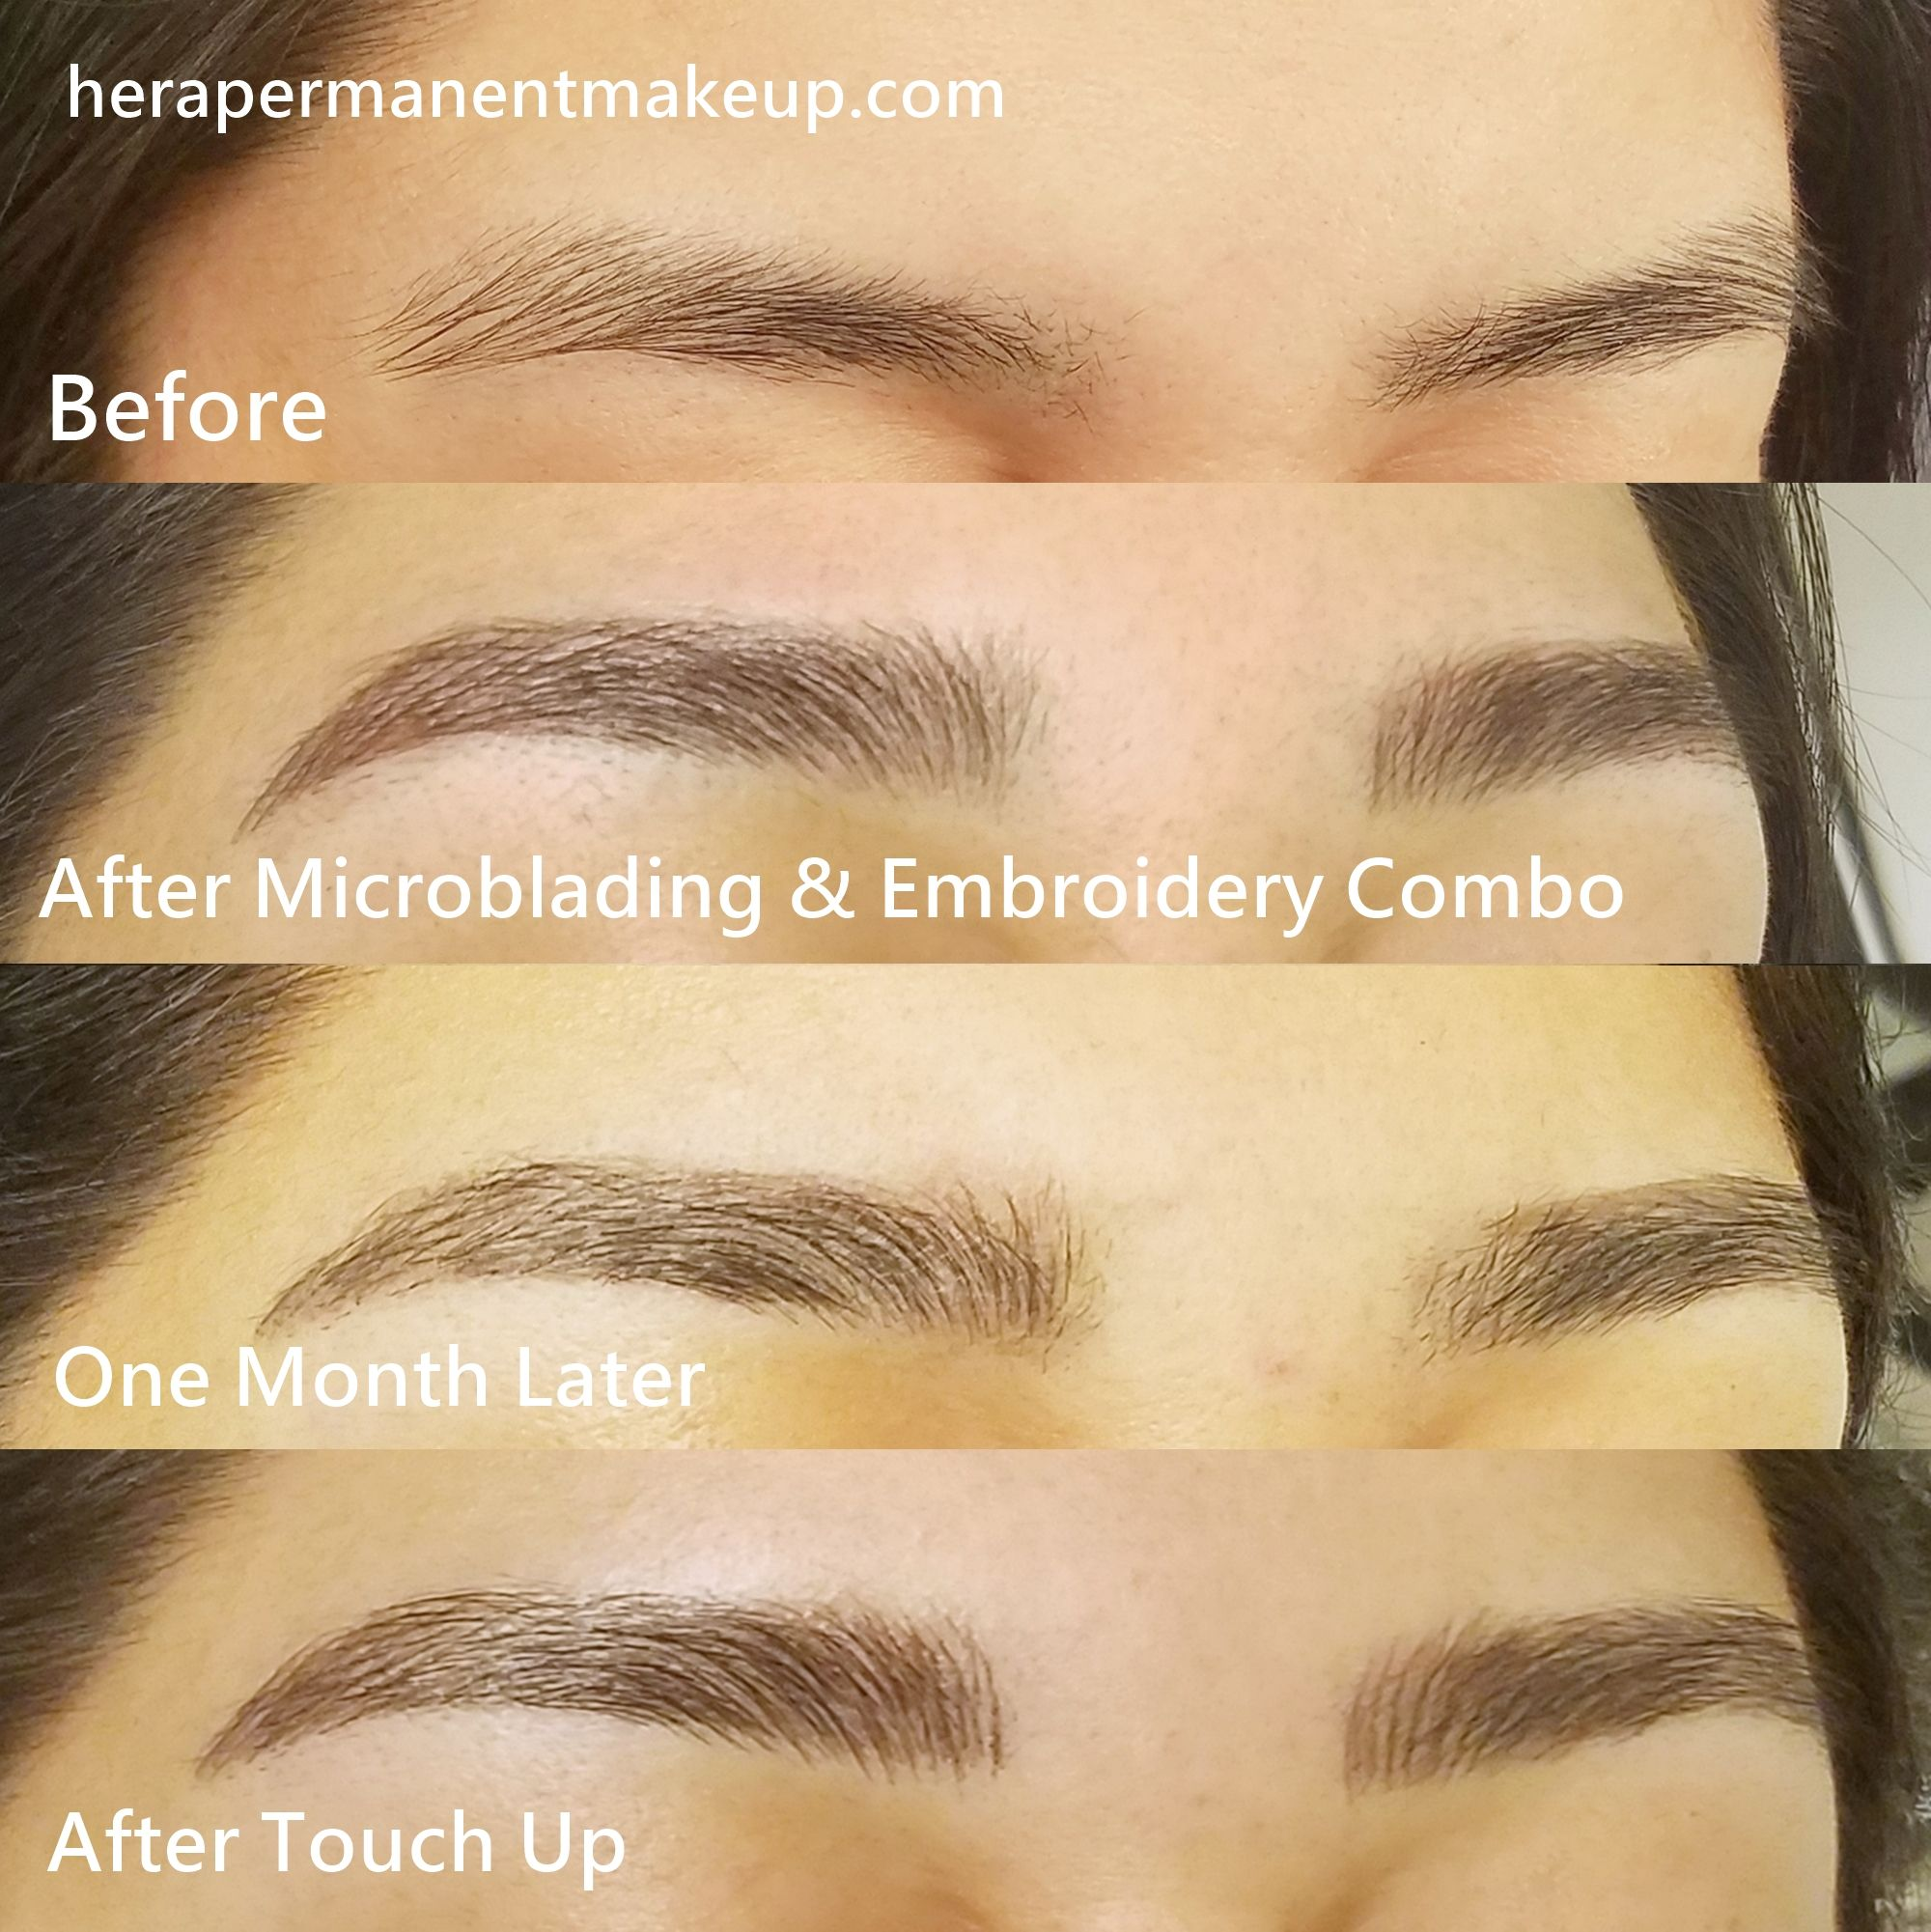 Pin by Hera Permanent Makeup on Eyebrow Microblading